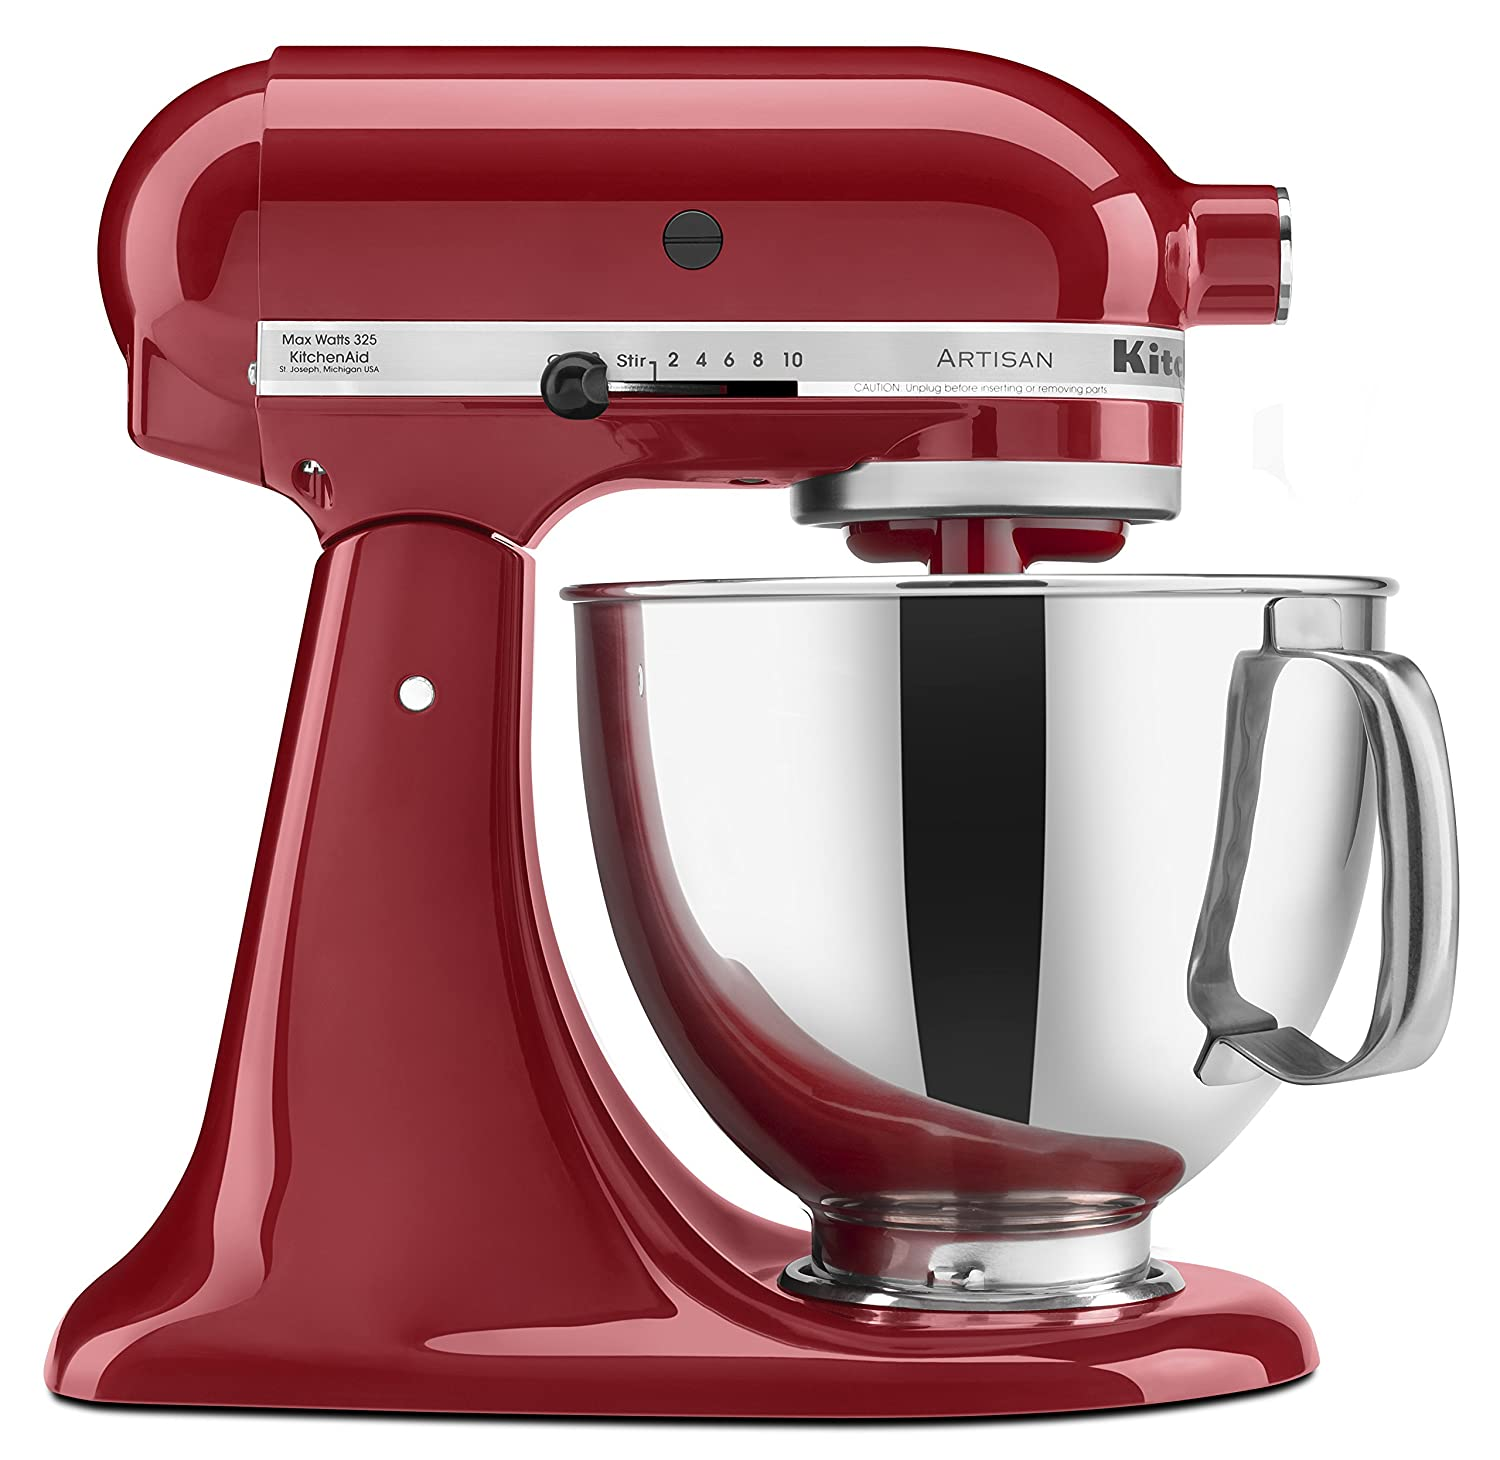 essential-cooking-tools-kitchenaid-stand-mixer